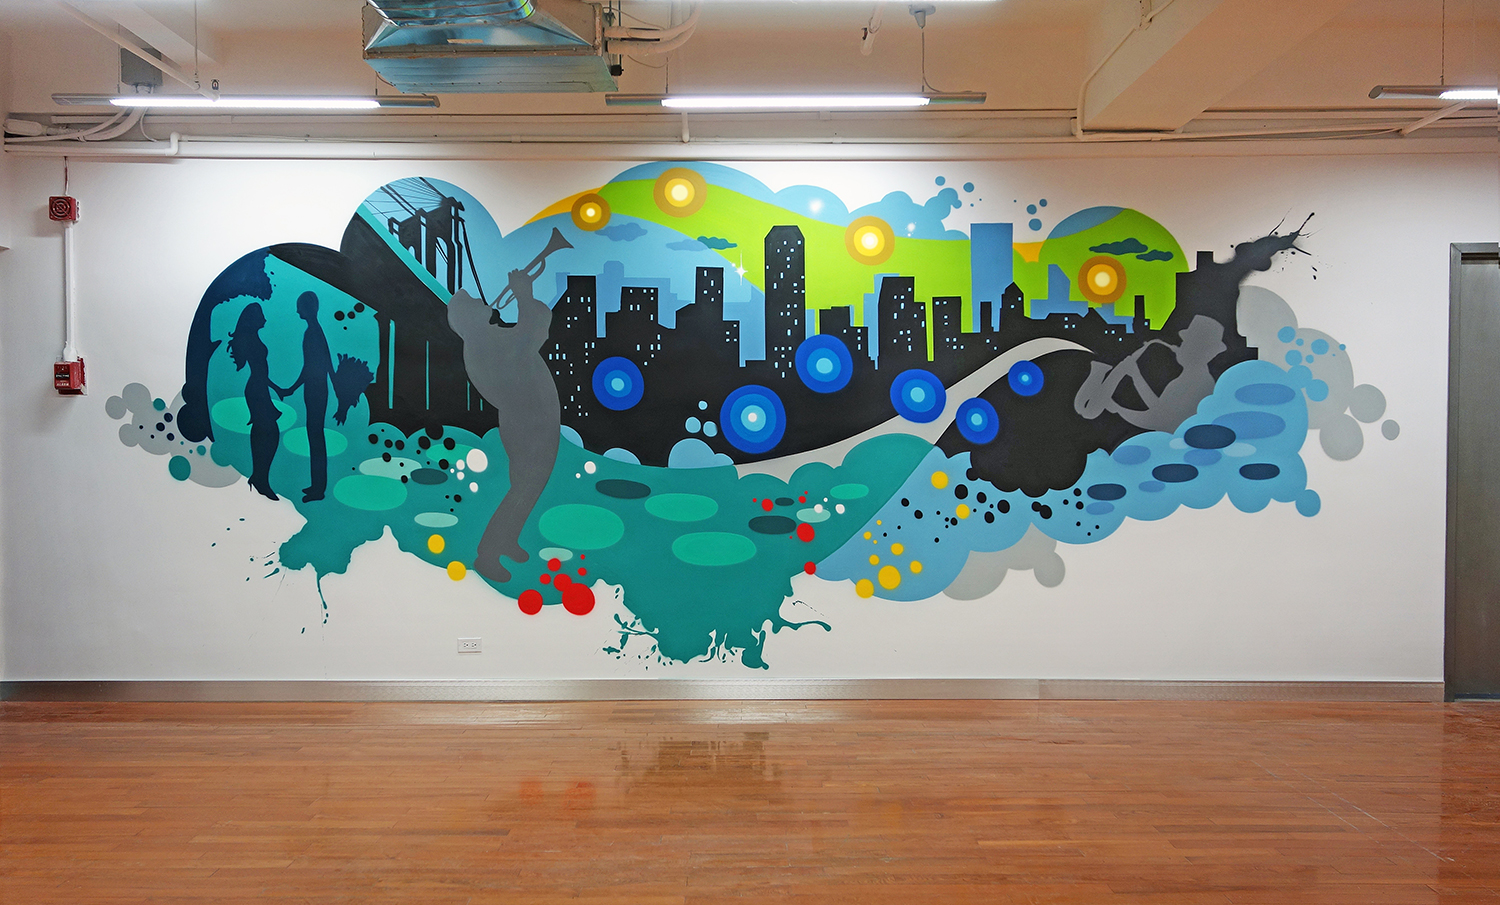 Nyc tech corporate office graffiti mural graffiti usa - Graffiti ideen ...